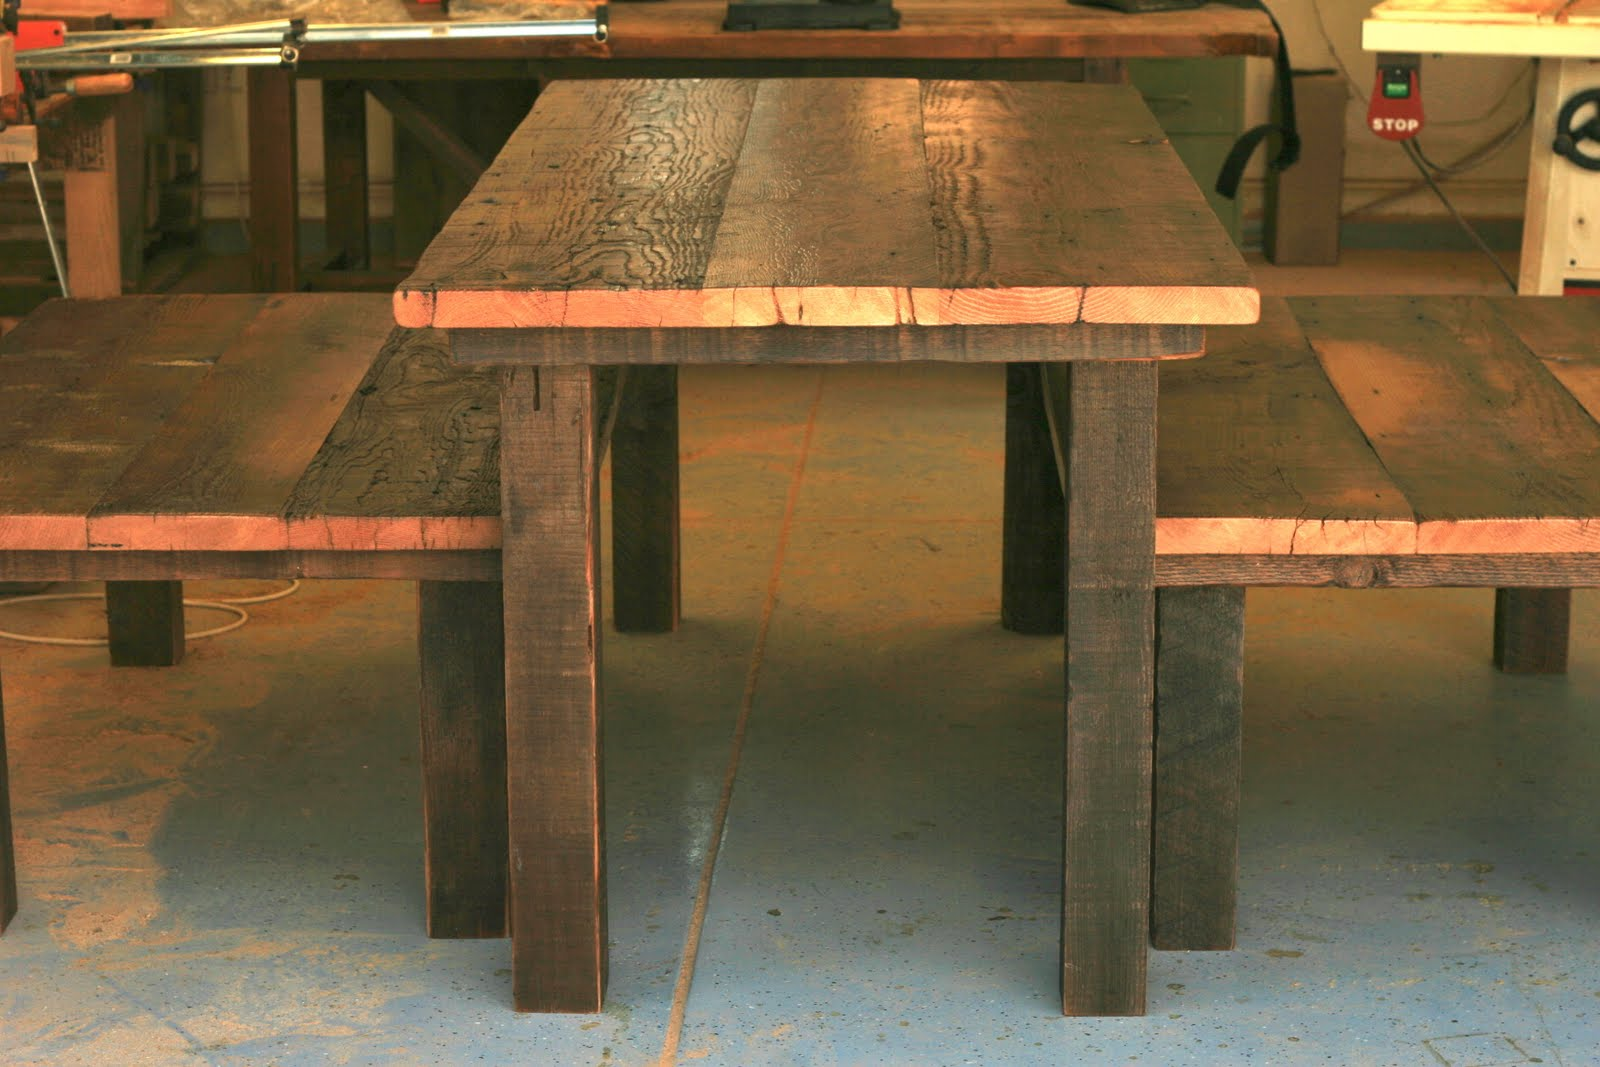 ... Exchange | Reclaimed Wood Furniture: Rustic Tables for Disneyland